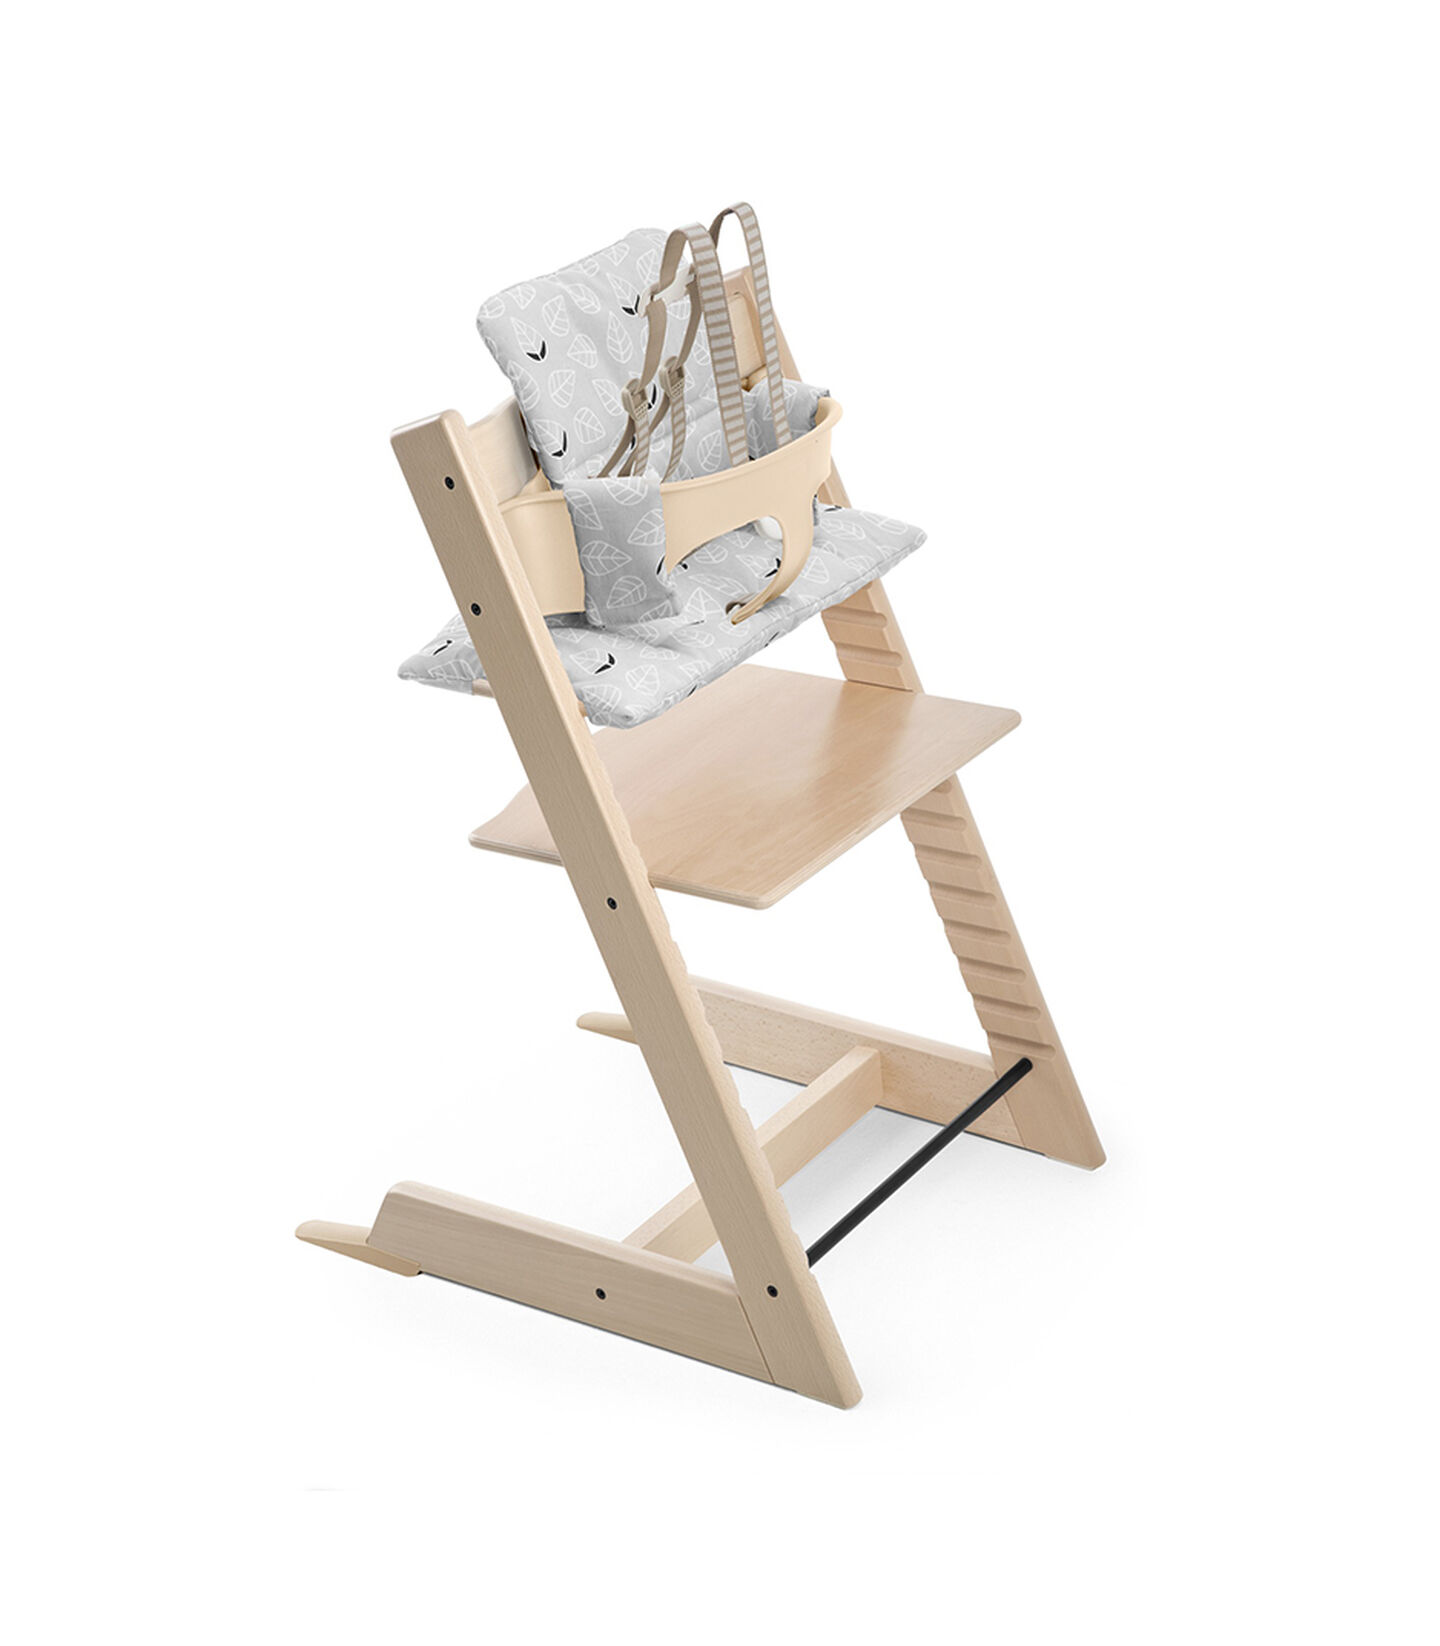 Tripp Trapp® Natural with Tripp Trapp® Baby Set, Natural and CushionGrey Leaf. US version.